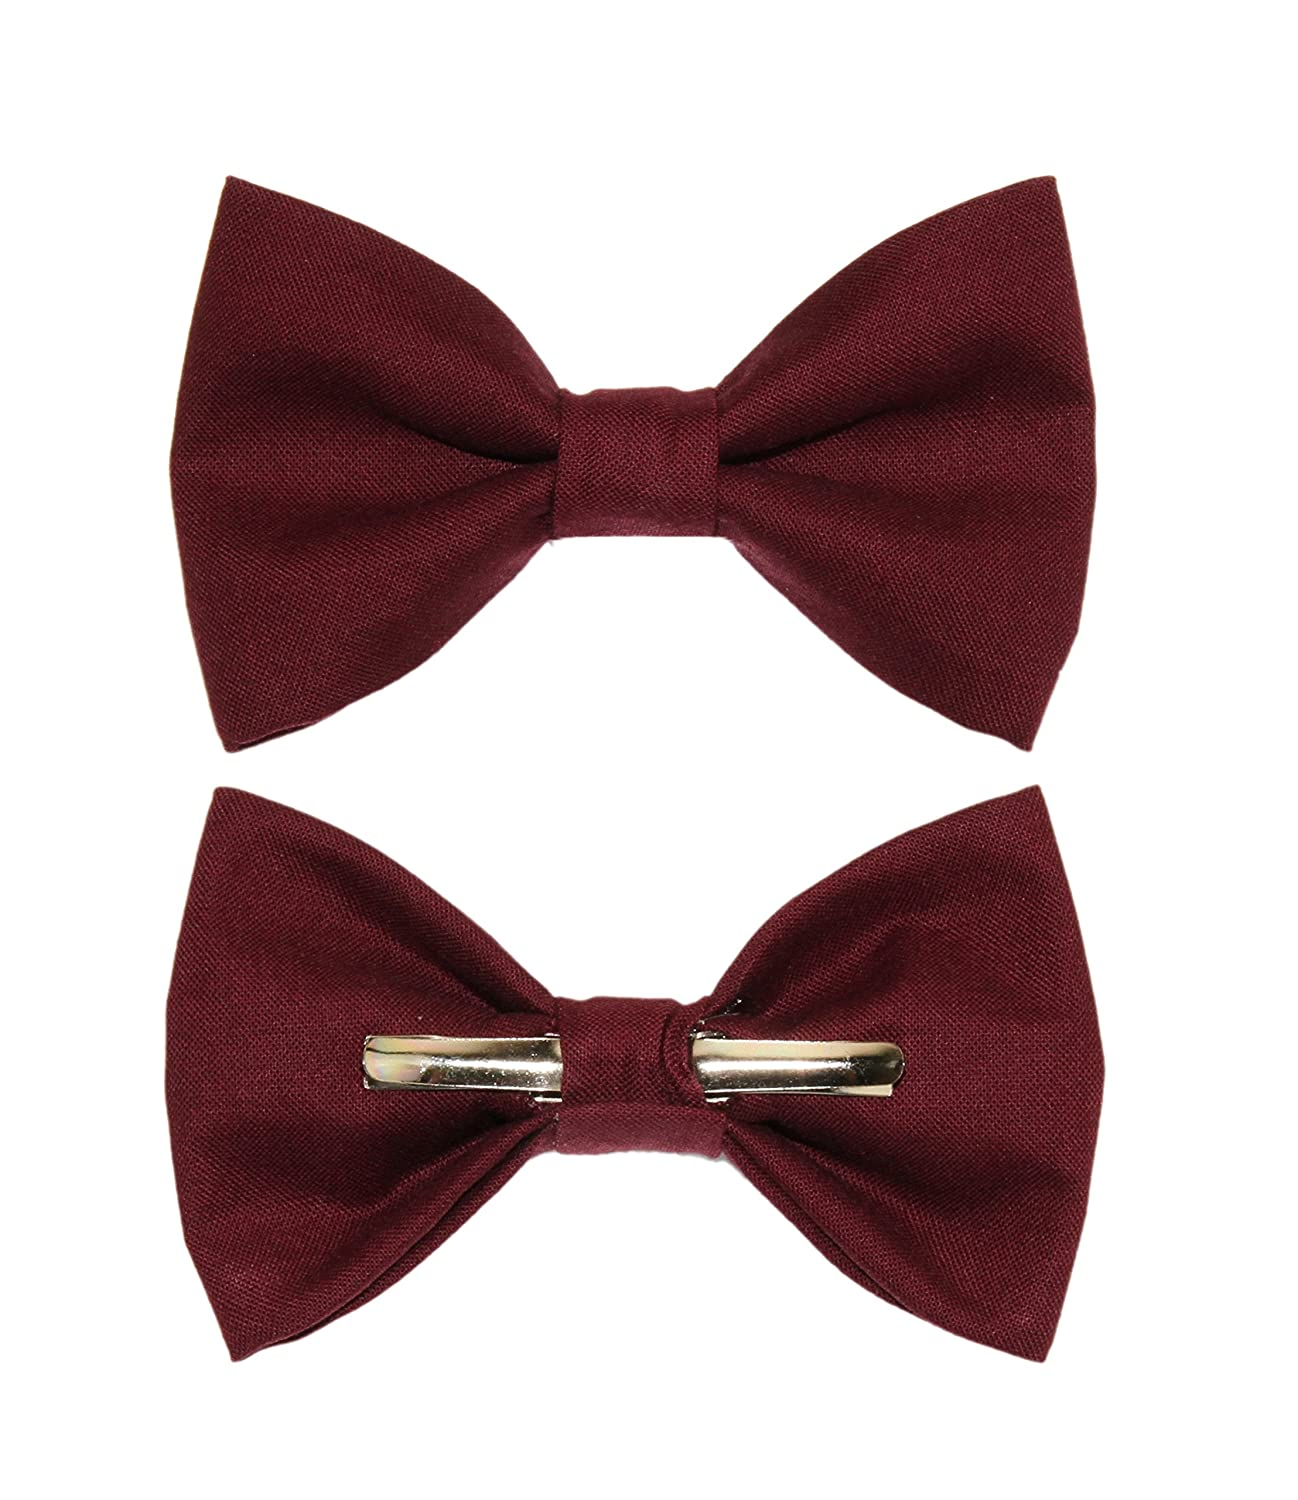 Boys Burgundy Red Clip On Cotton Bow Tie Bowtie amy2004marie 113271